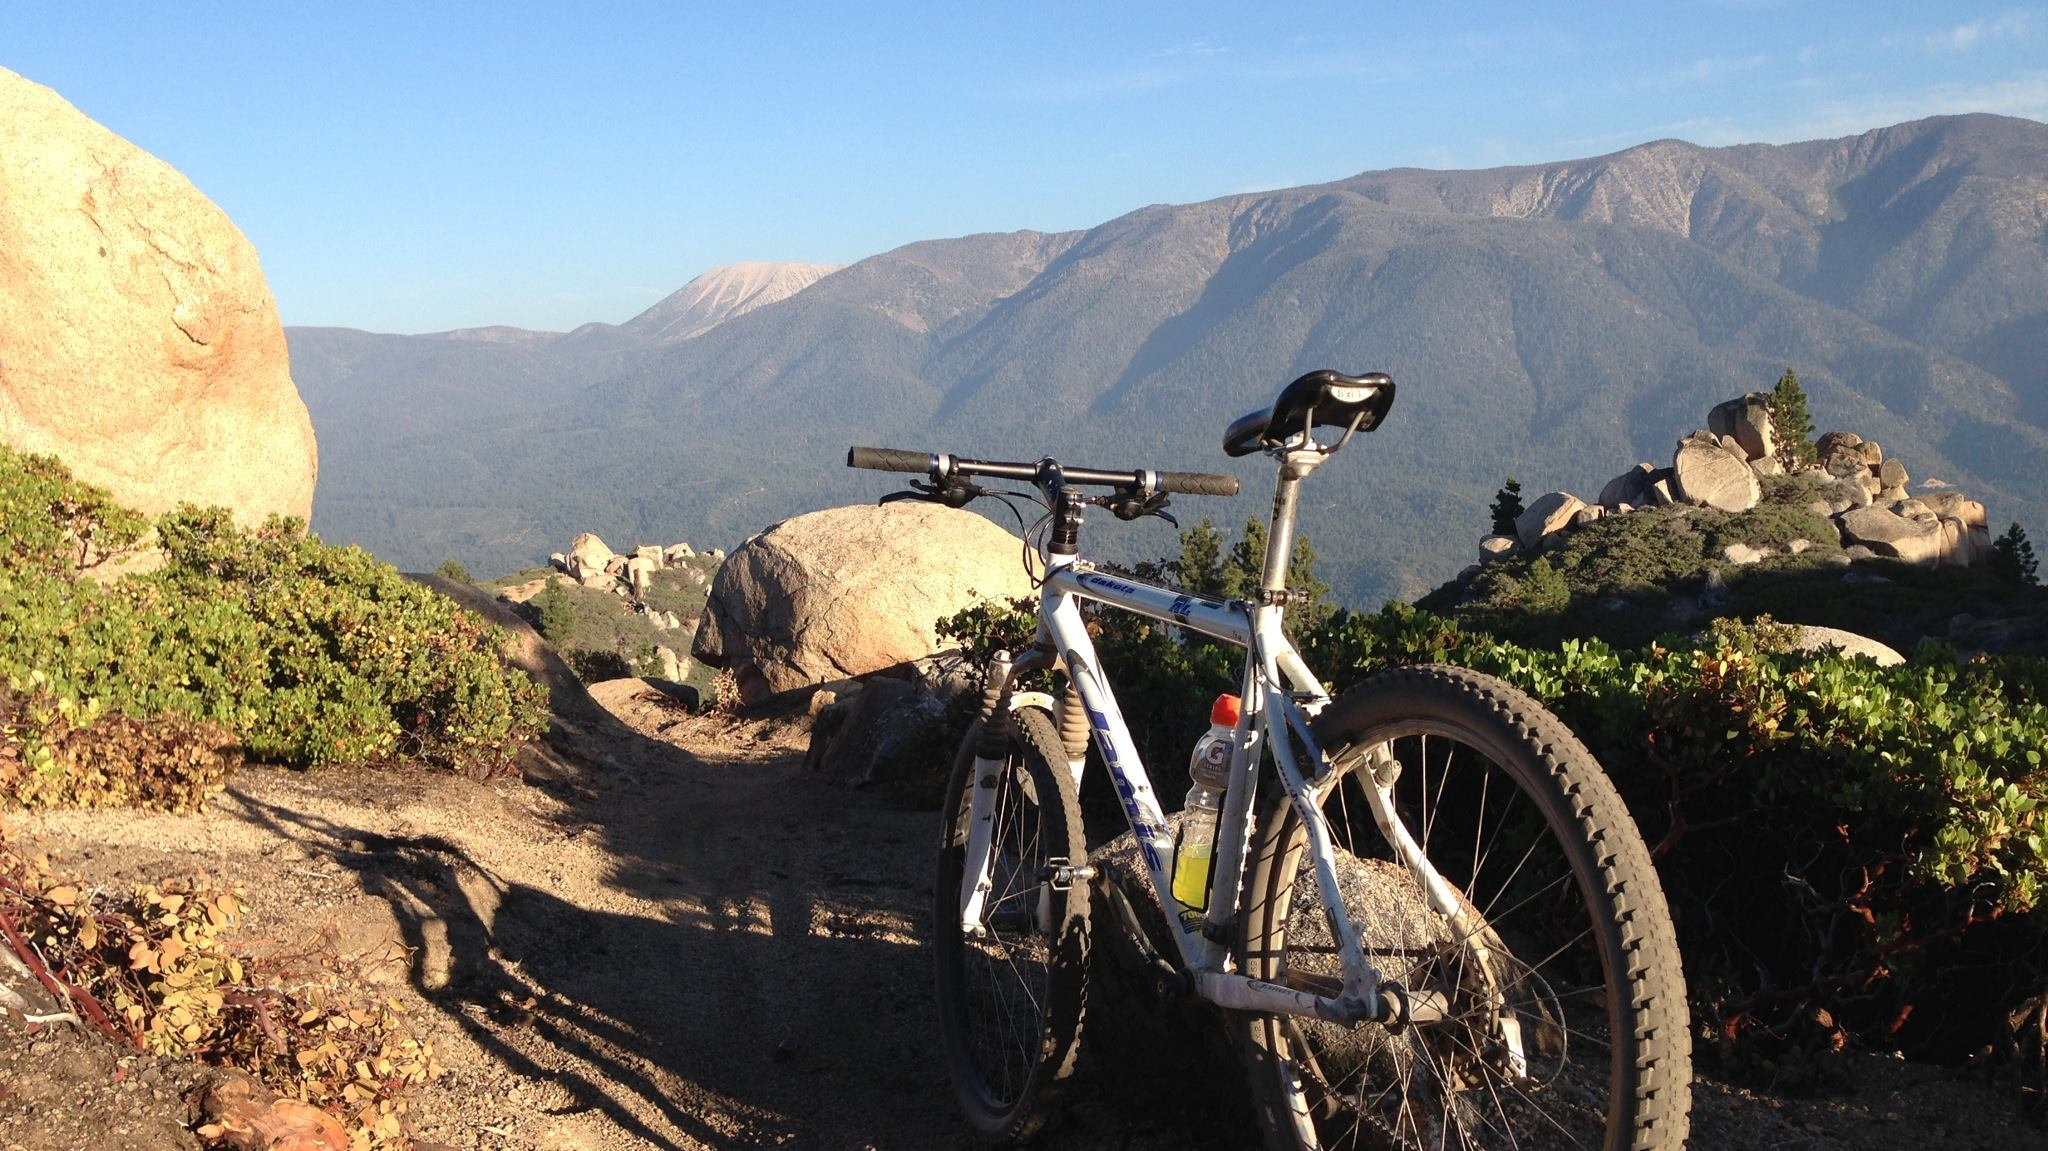 4 Reasons To Go Cycling In Big Bear